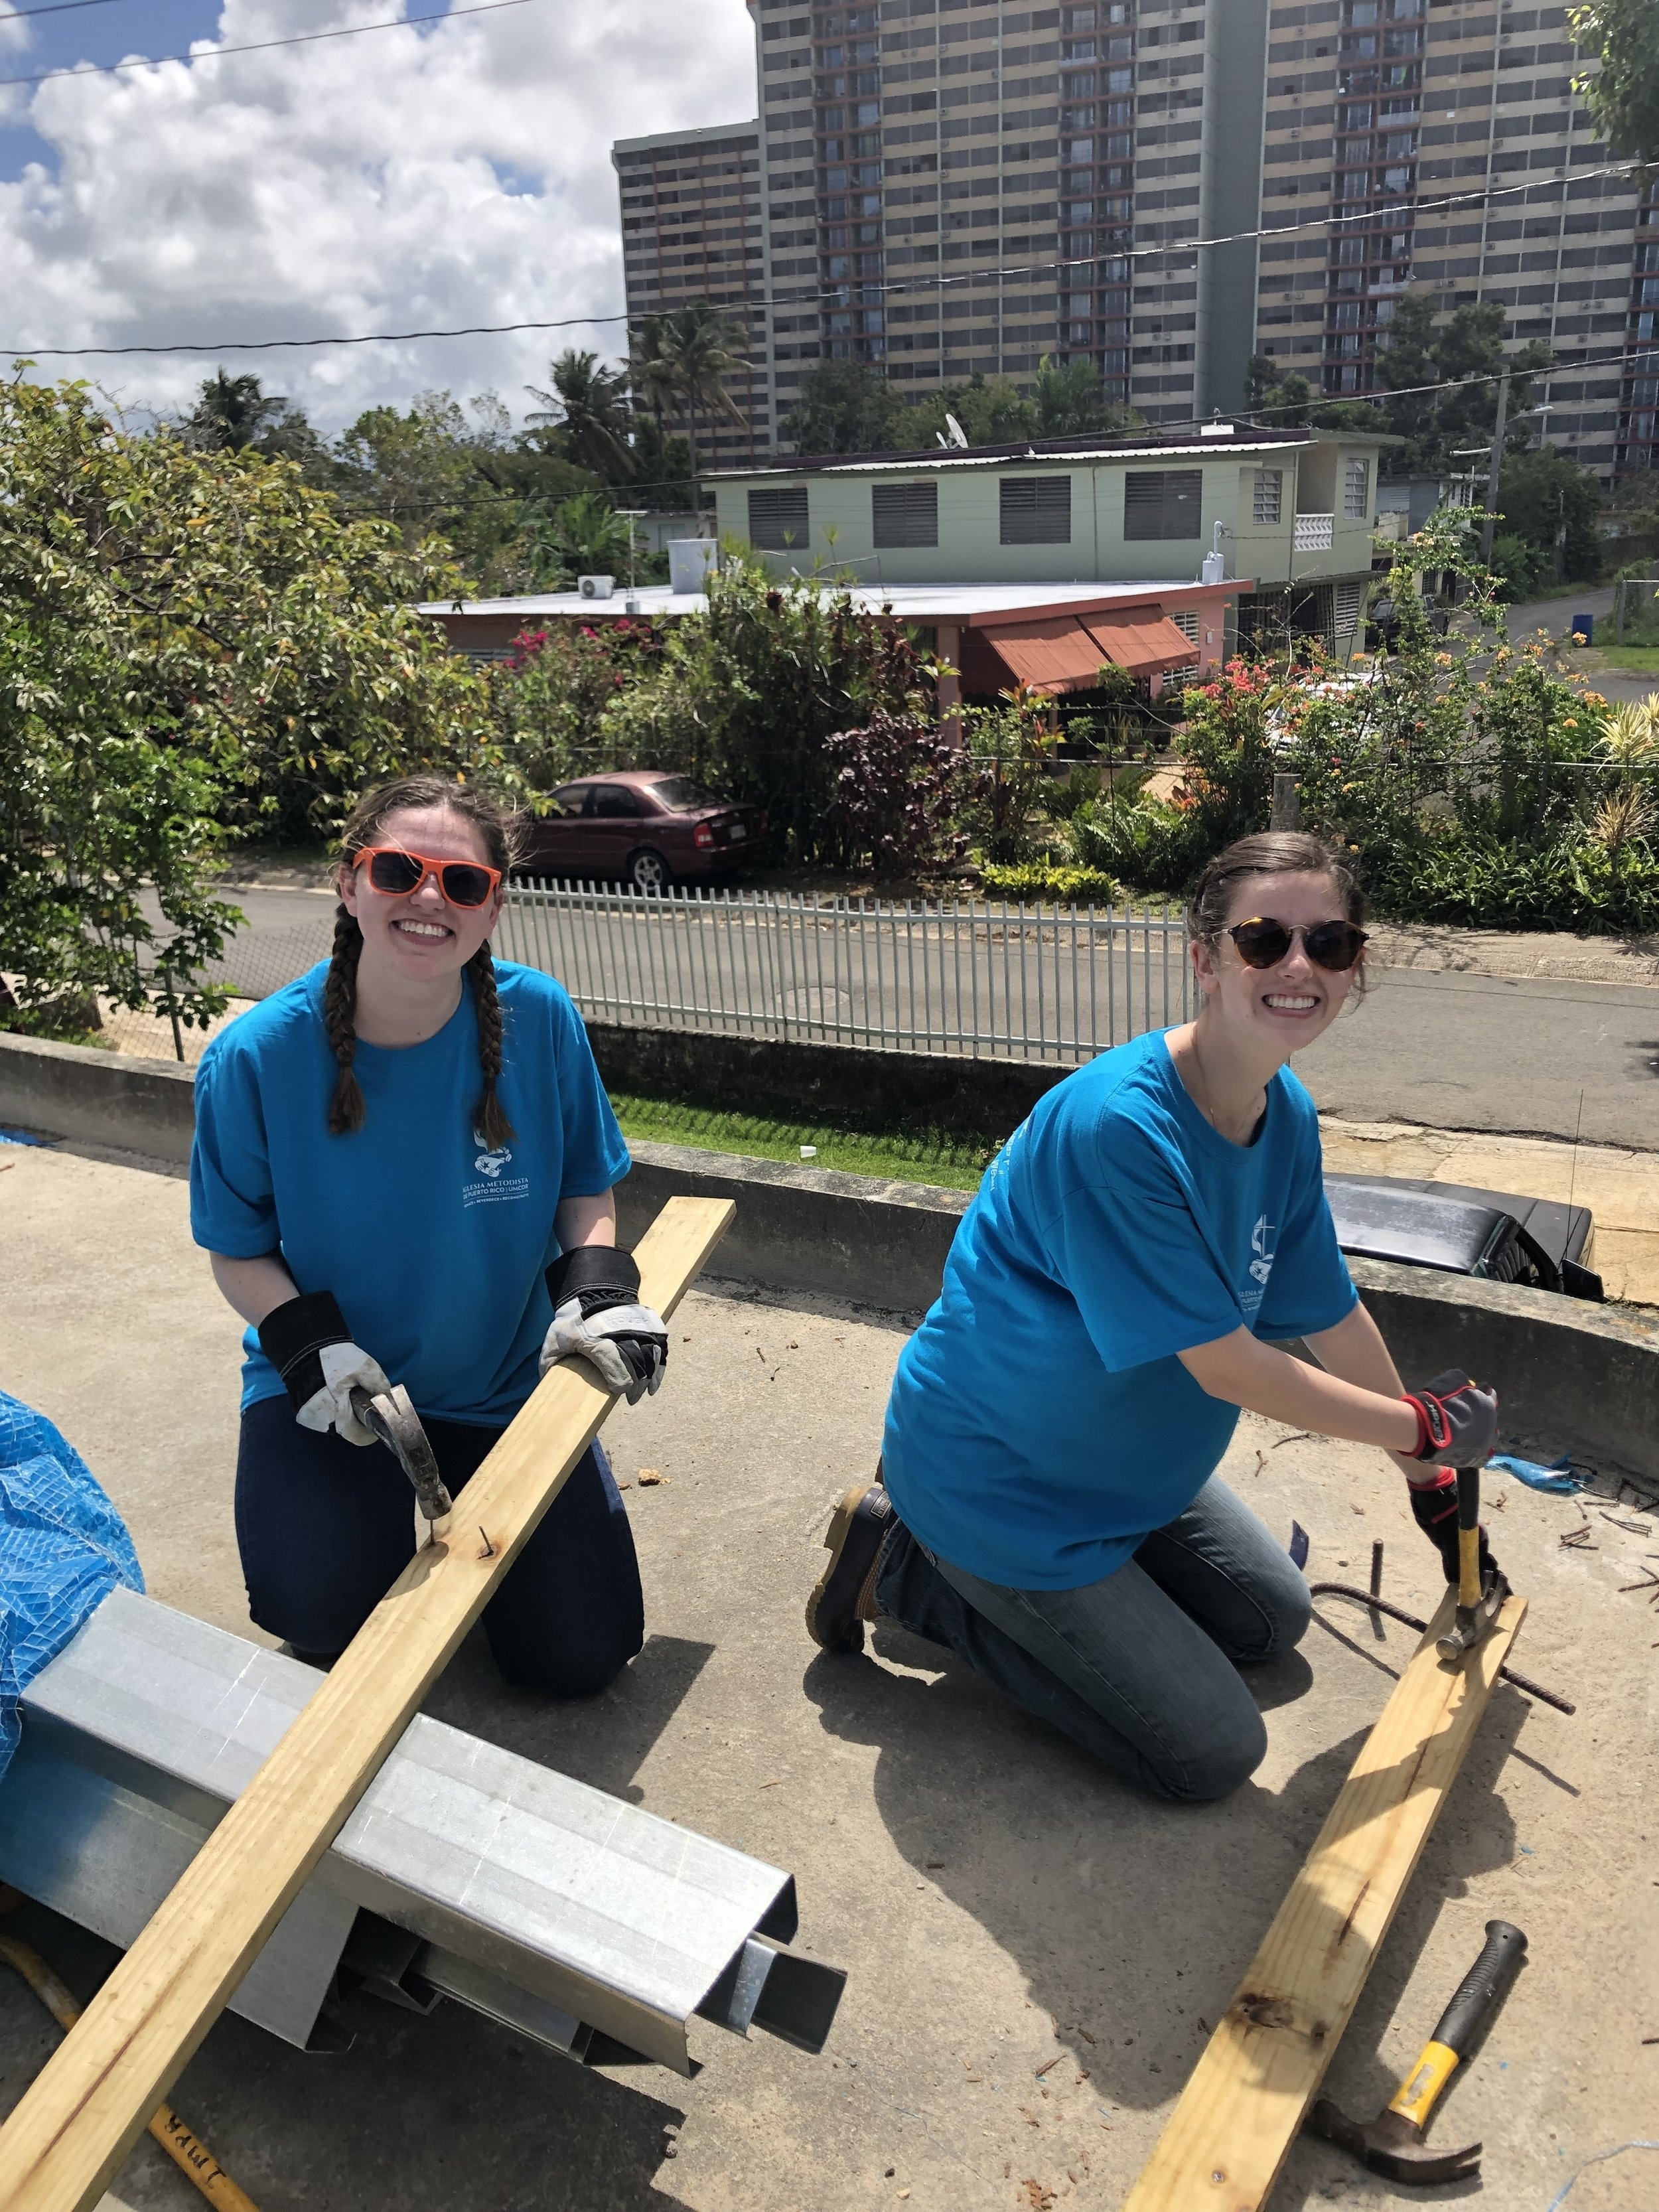 Lindsey Baird and Tatum Connell from Team 1 removing the nails from the boards that were part of the temporary tarp roof (as mentioned above)